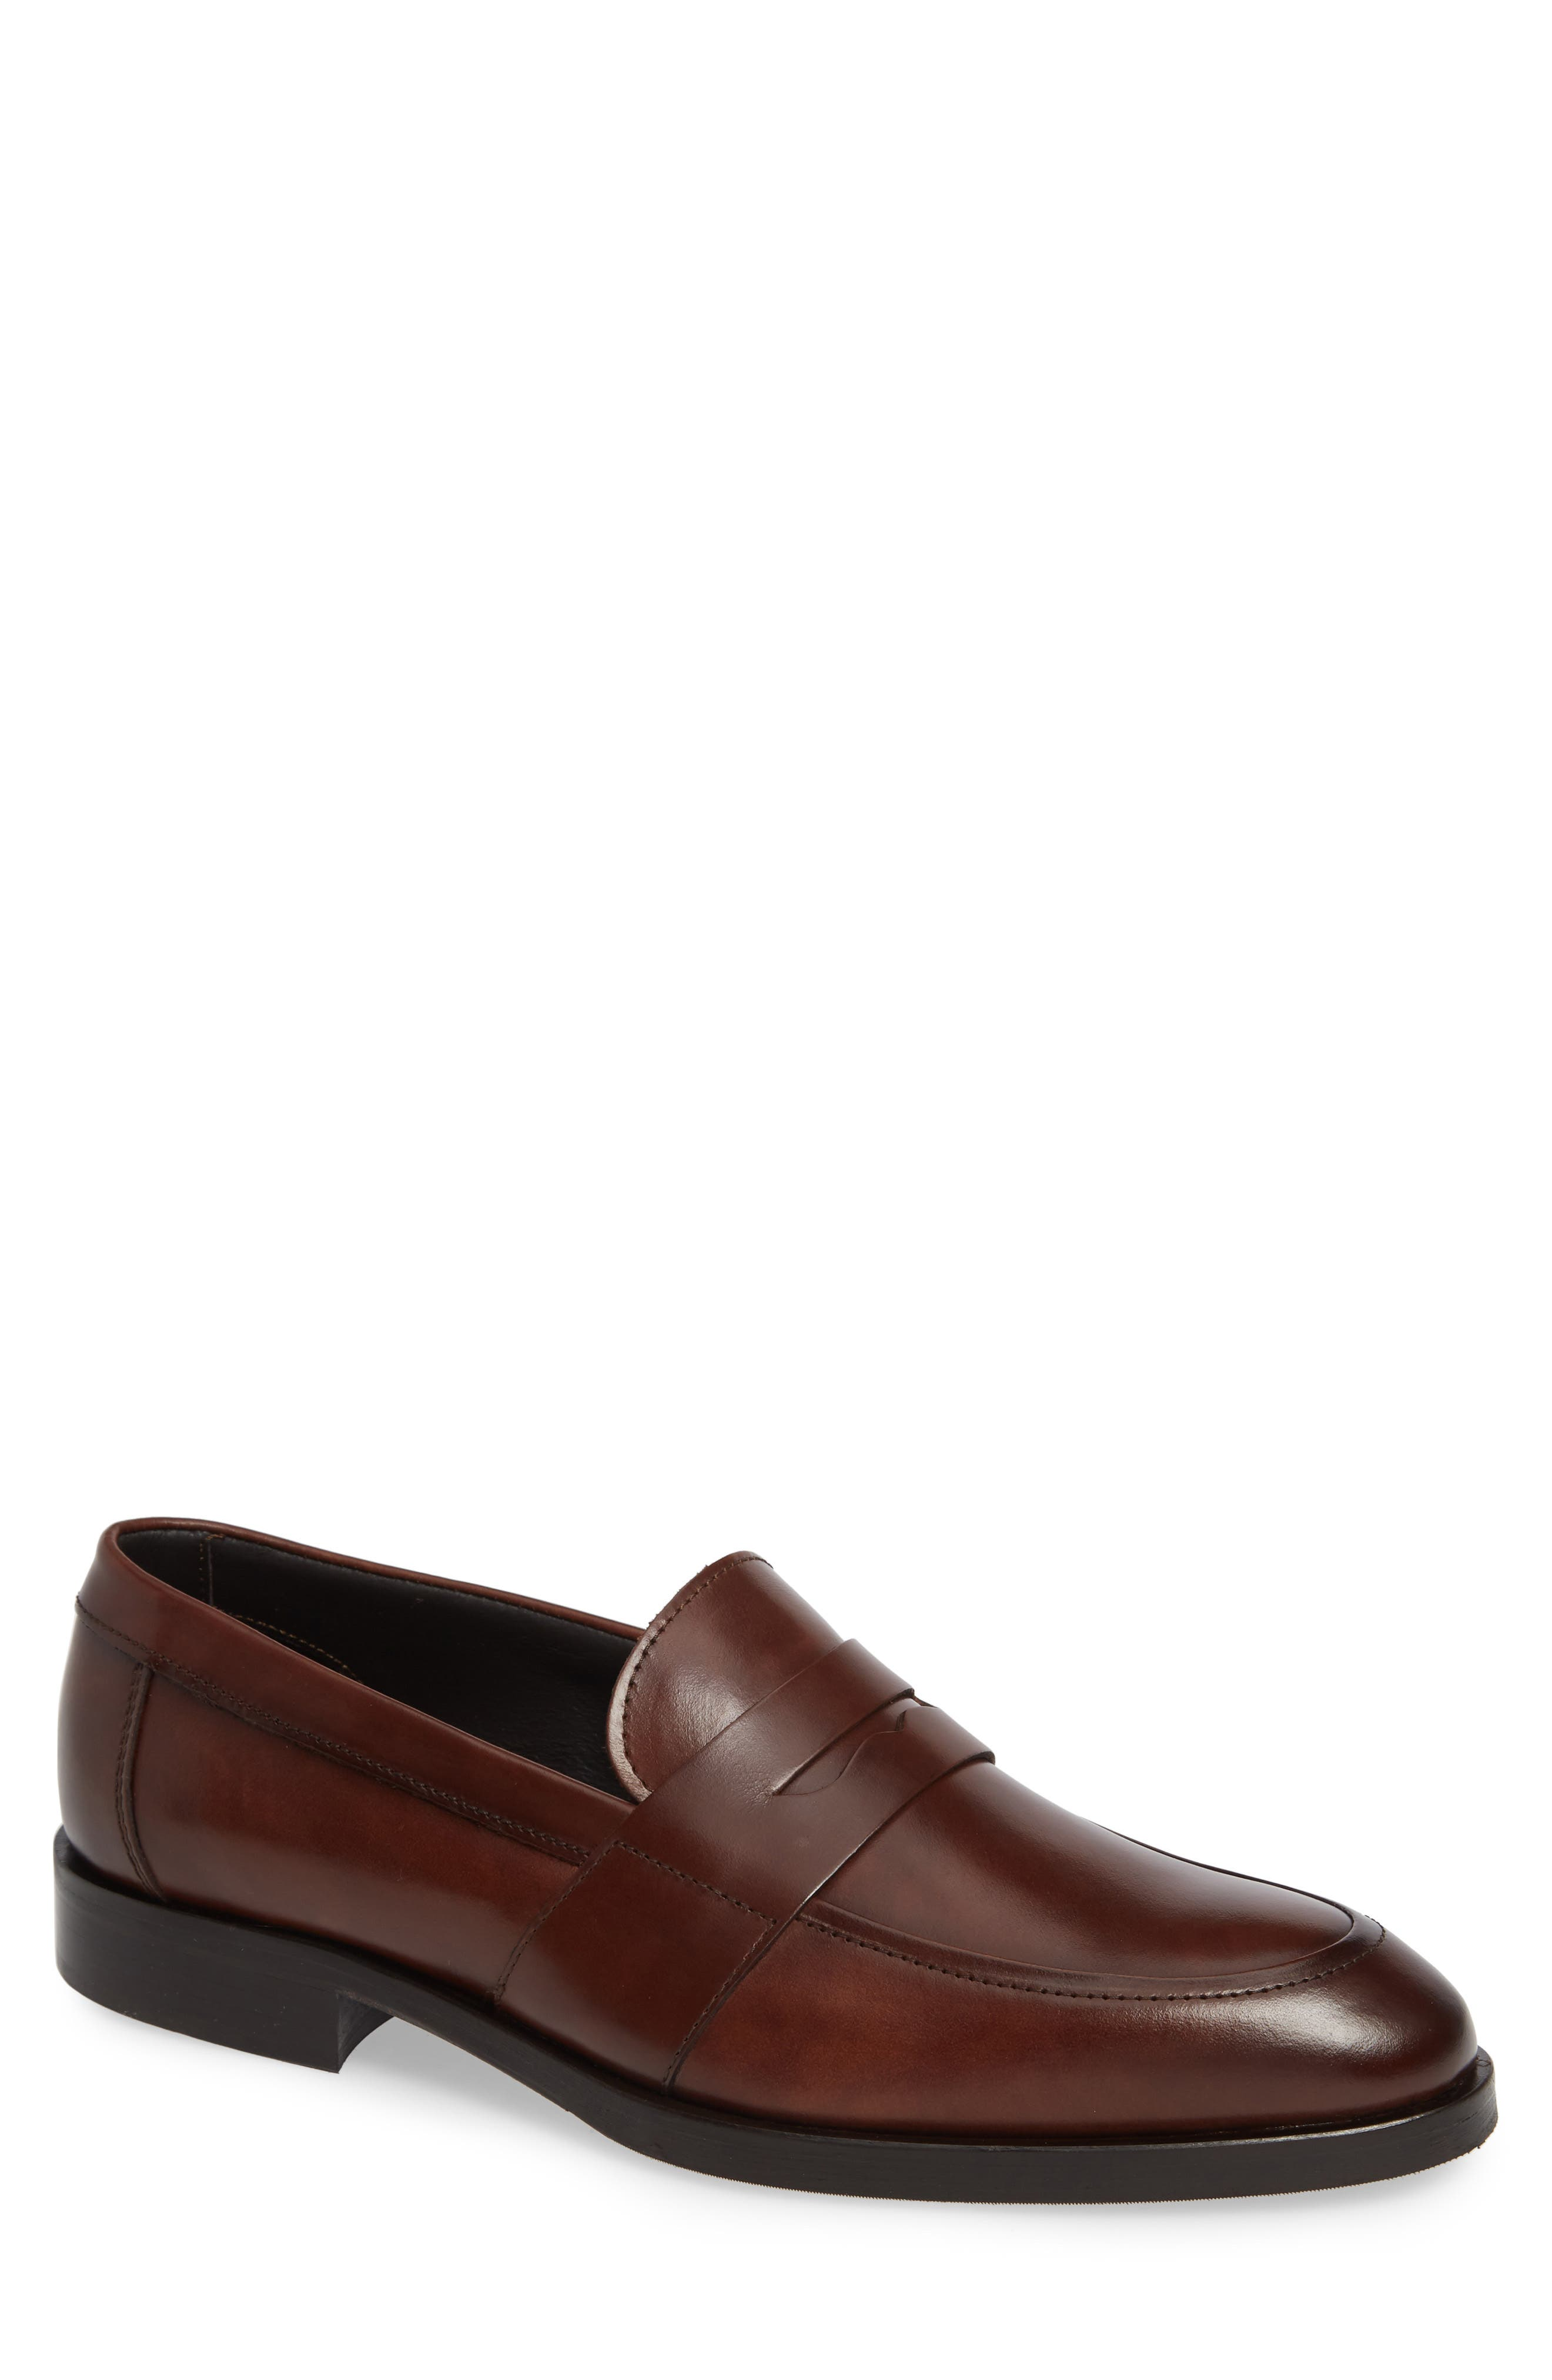 Devries Penny Loafer,                             Main thumbnail 1, color,                             VITELLO BRUCIATO LEATHER